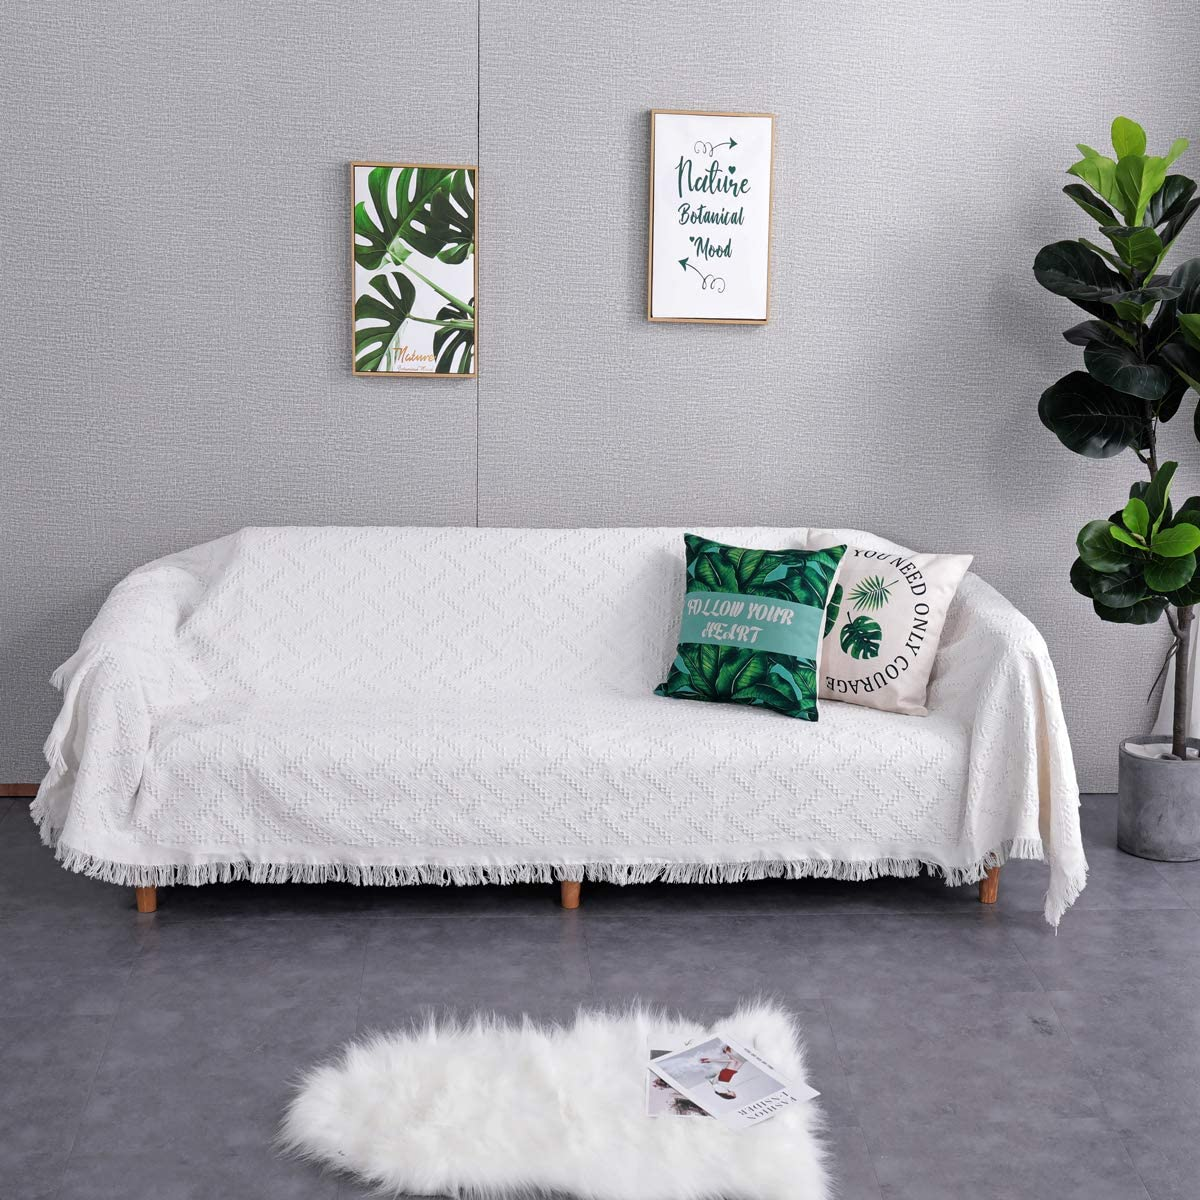 Sofier Couch Cover Sofa Covers for 3 Cushion Couch Geometrical Premium Sofa Covers for Living Room Sectional Sofa Covers for Dogs Pet Couch Protector Furniture Covers(White Grid, 90